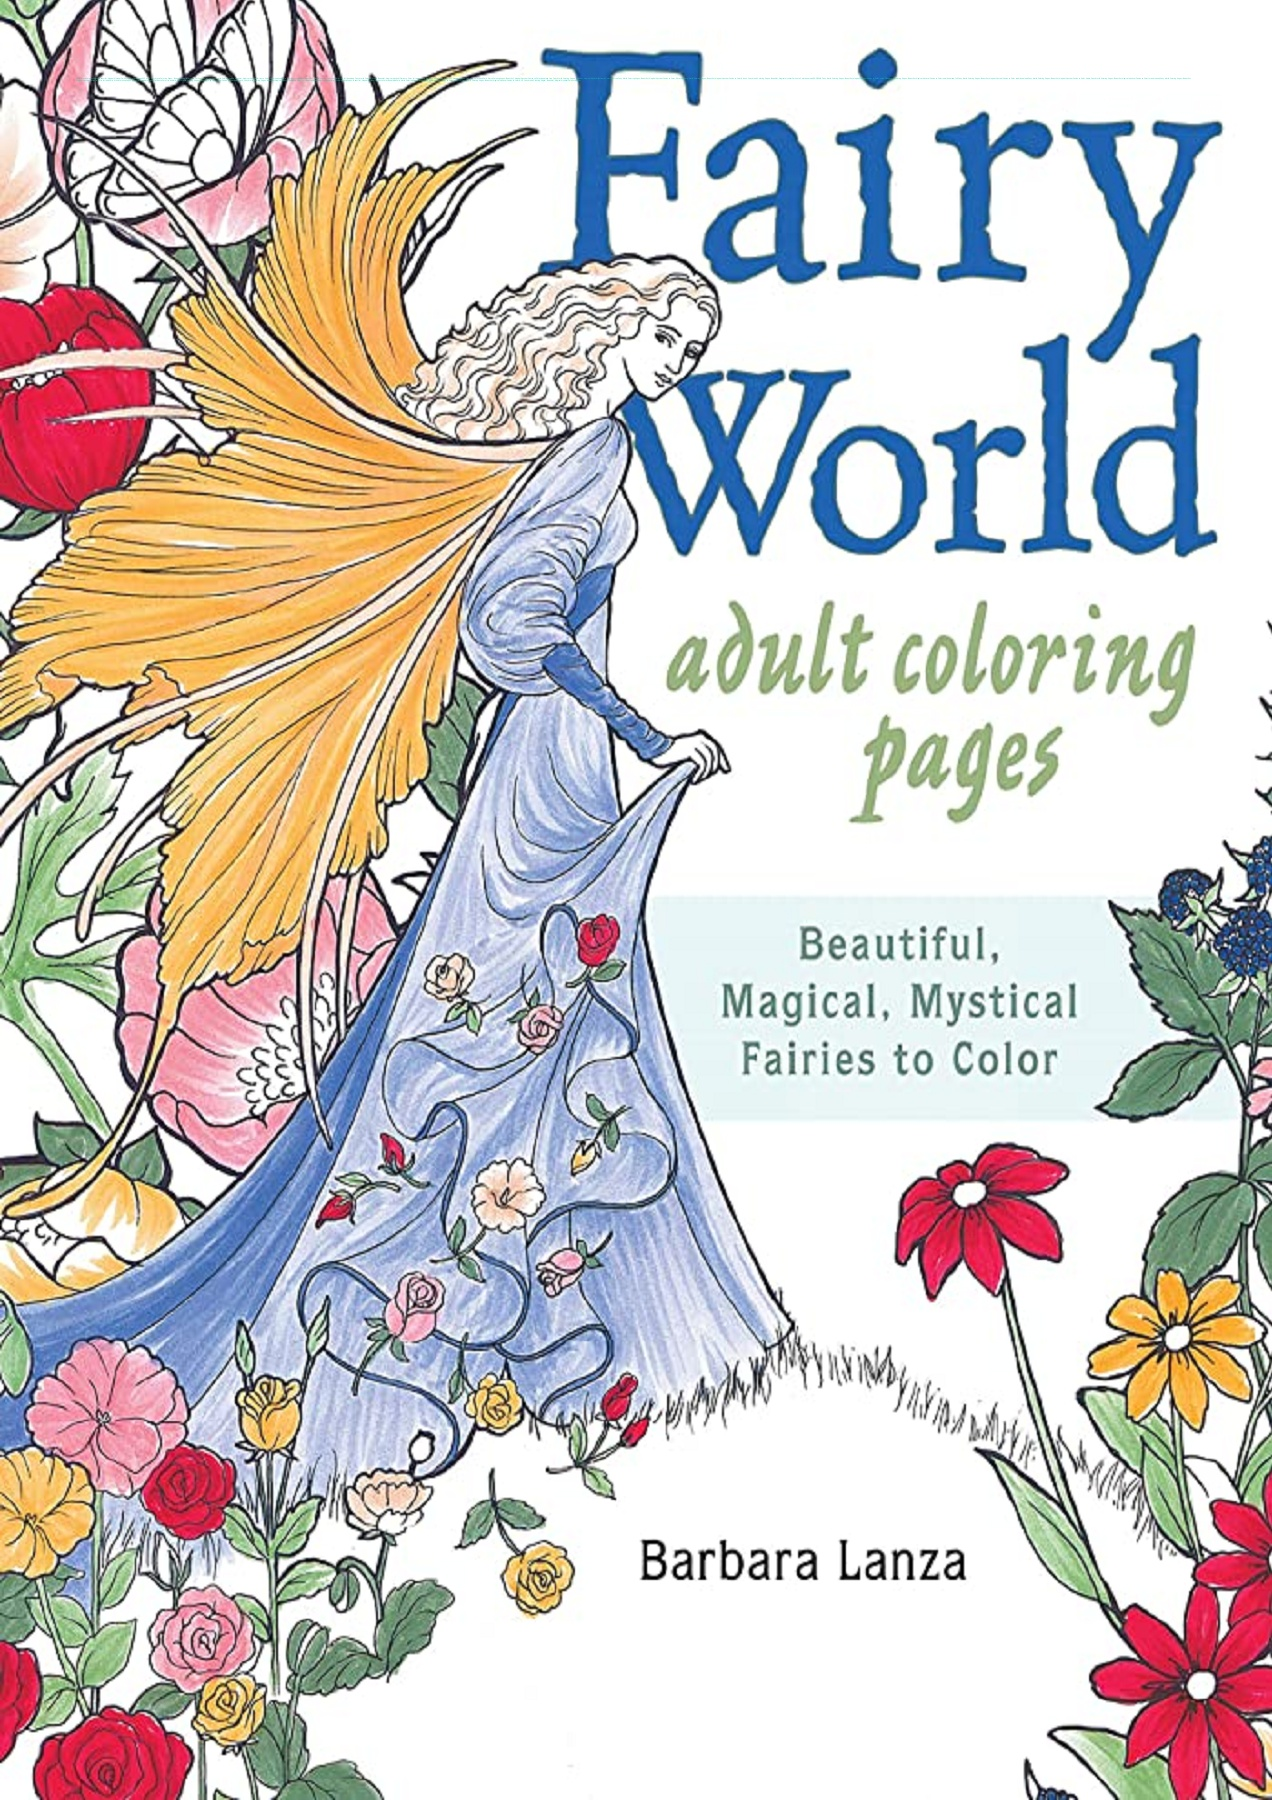 Audiobook Download Fairy World Coloring Pages Beautiful Magical Mystical Fairies To Color Unlimited Flip Ebook Pages 1 3 Anyflip Anyflip